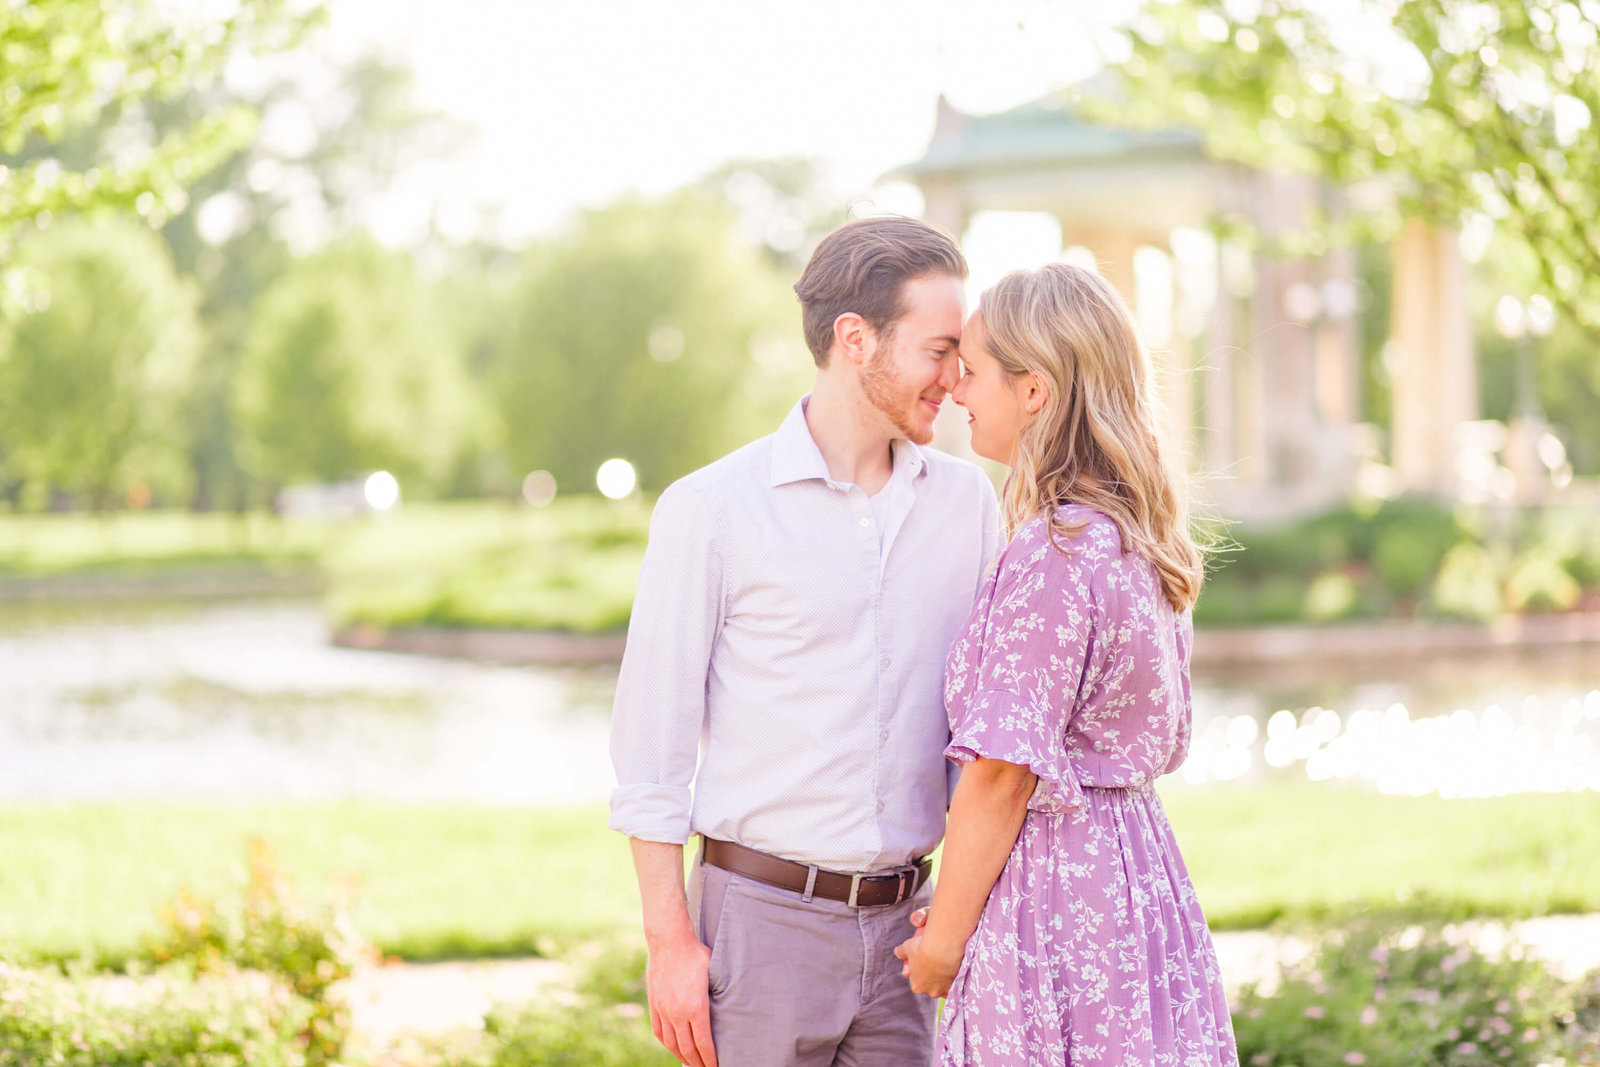 st-louis-wedding-photographer-forest-park-engagement-session-romantic-willow-tree00004